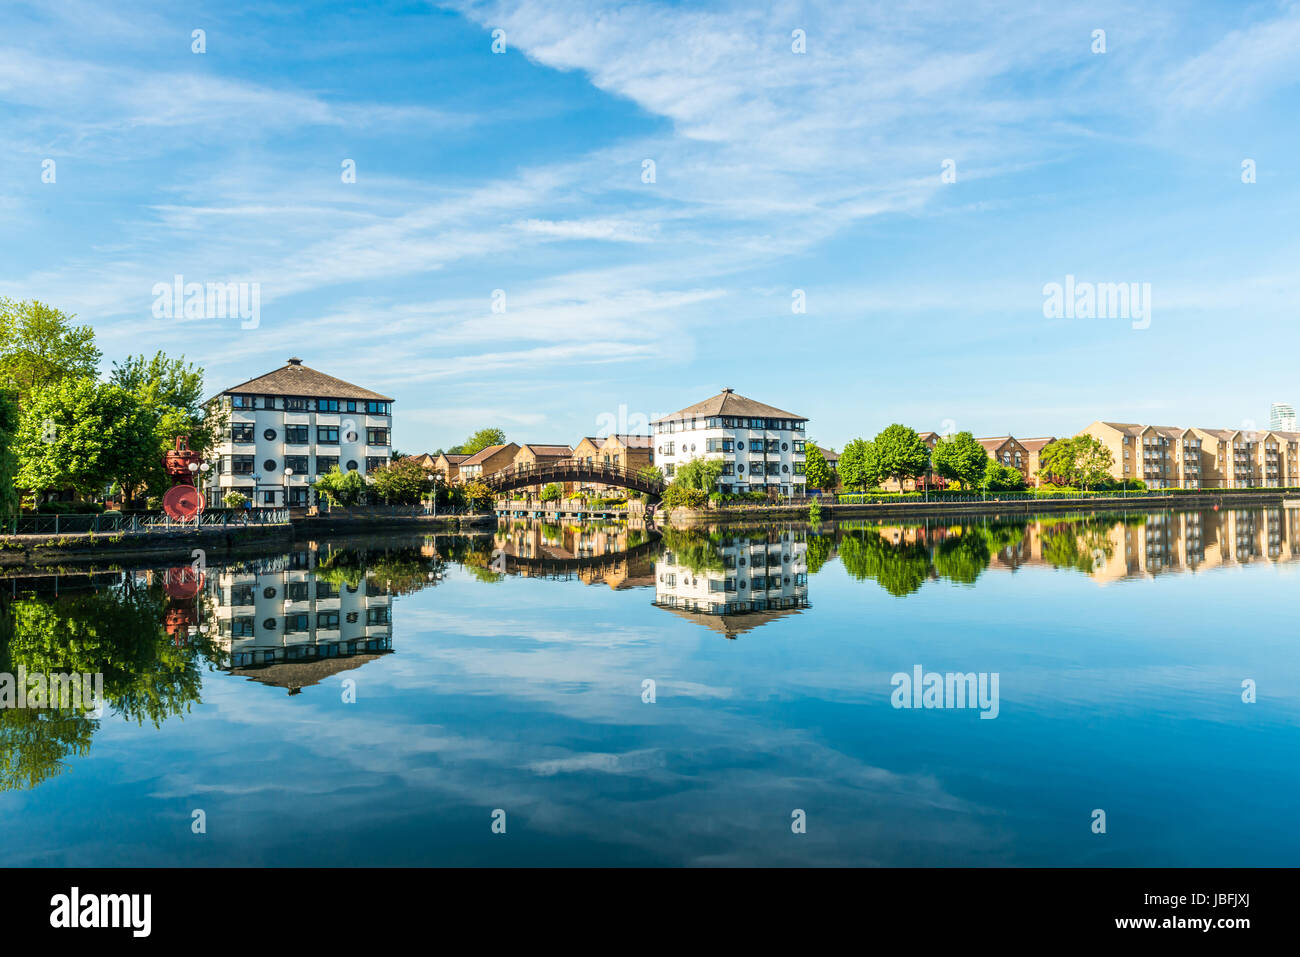 London, United Kingdom - June 01, 2017: Morning in Millwall Outer Dock near Canary Wharf in East London in calm - Stock Image